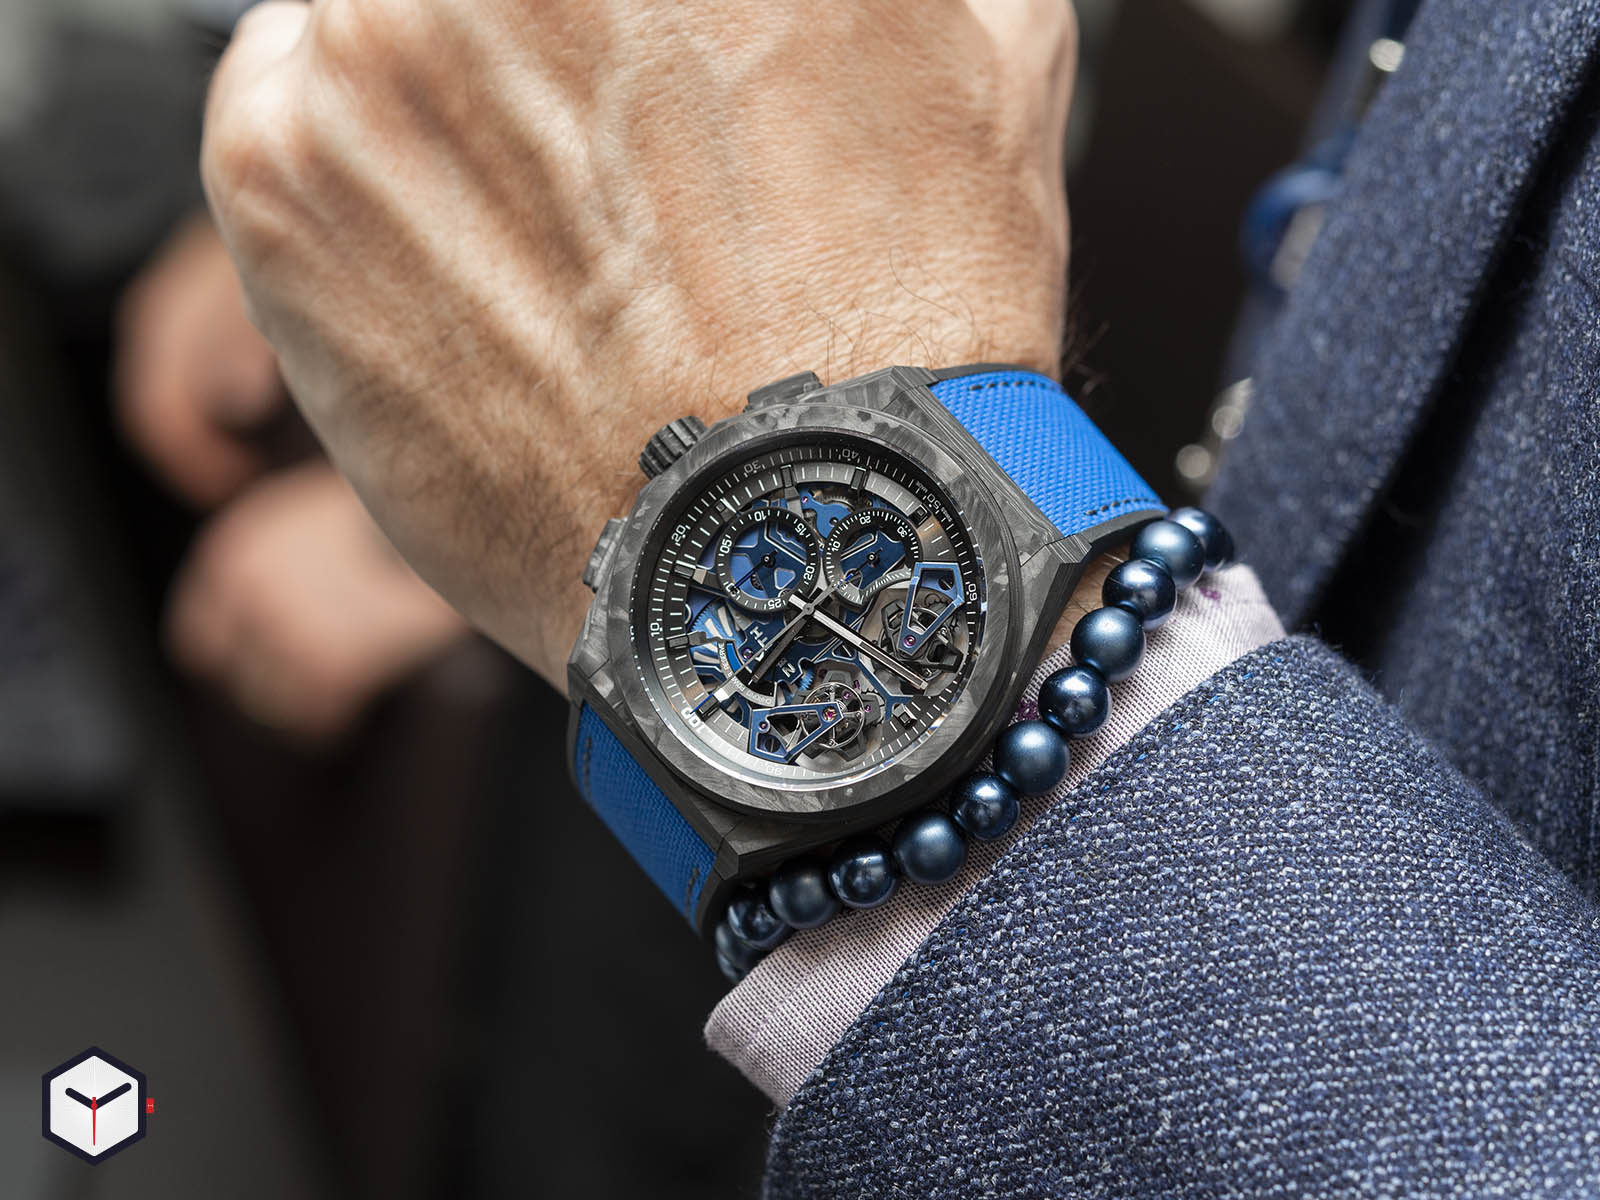 10-9000-9020-79-r918-zenith-defy-double-tourbillon.jpg